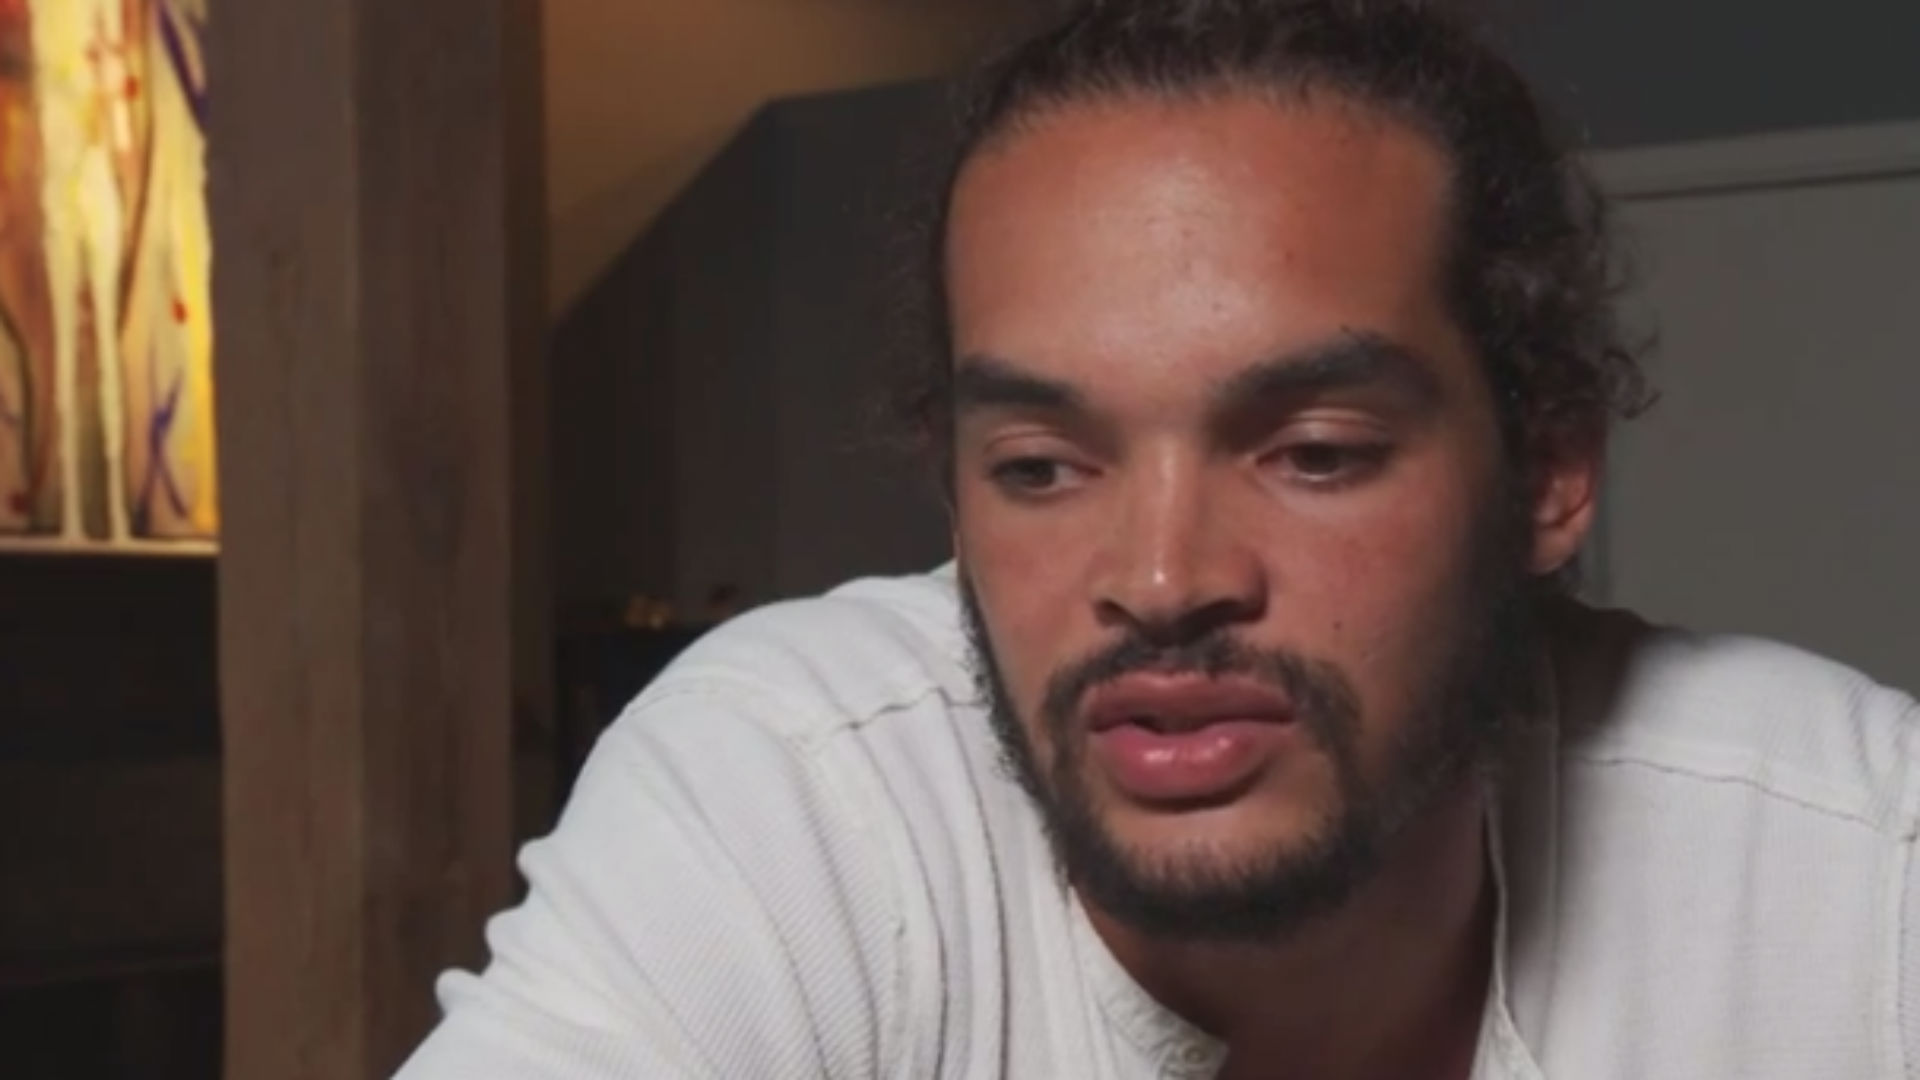 joakim-noah-030315-ftr-youtube.jpg